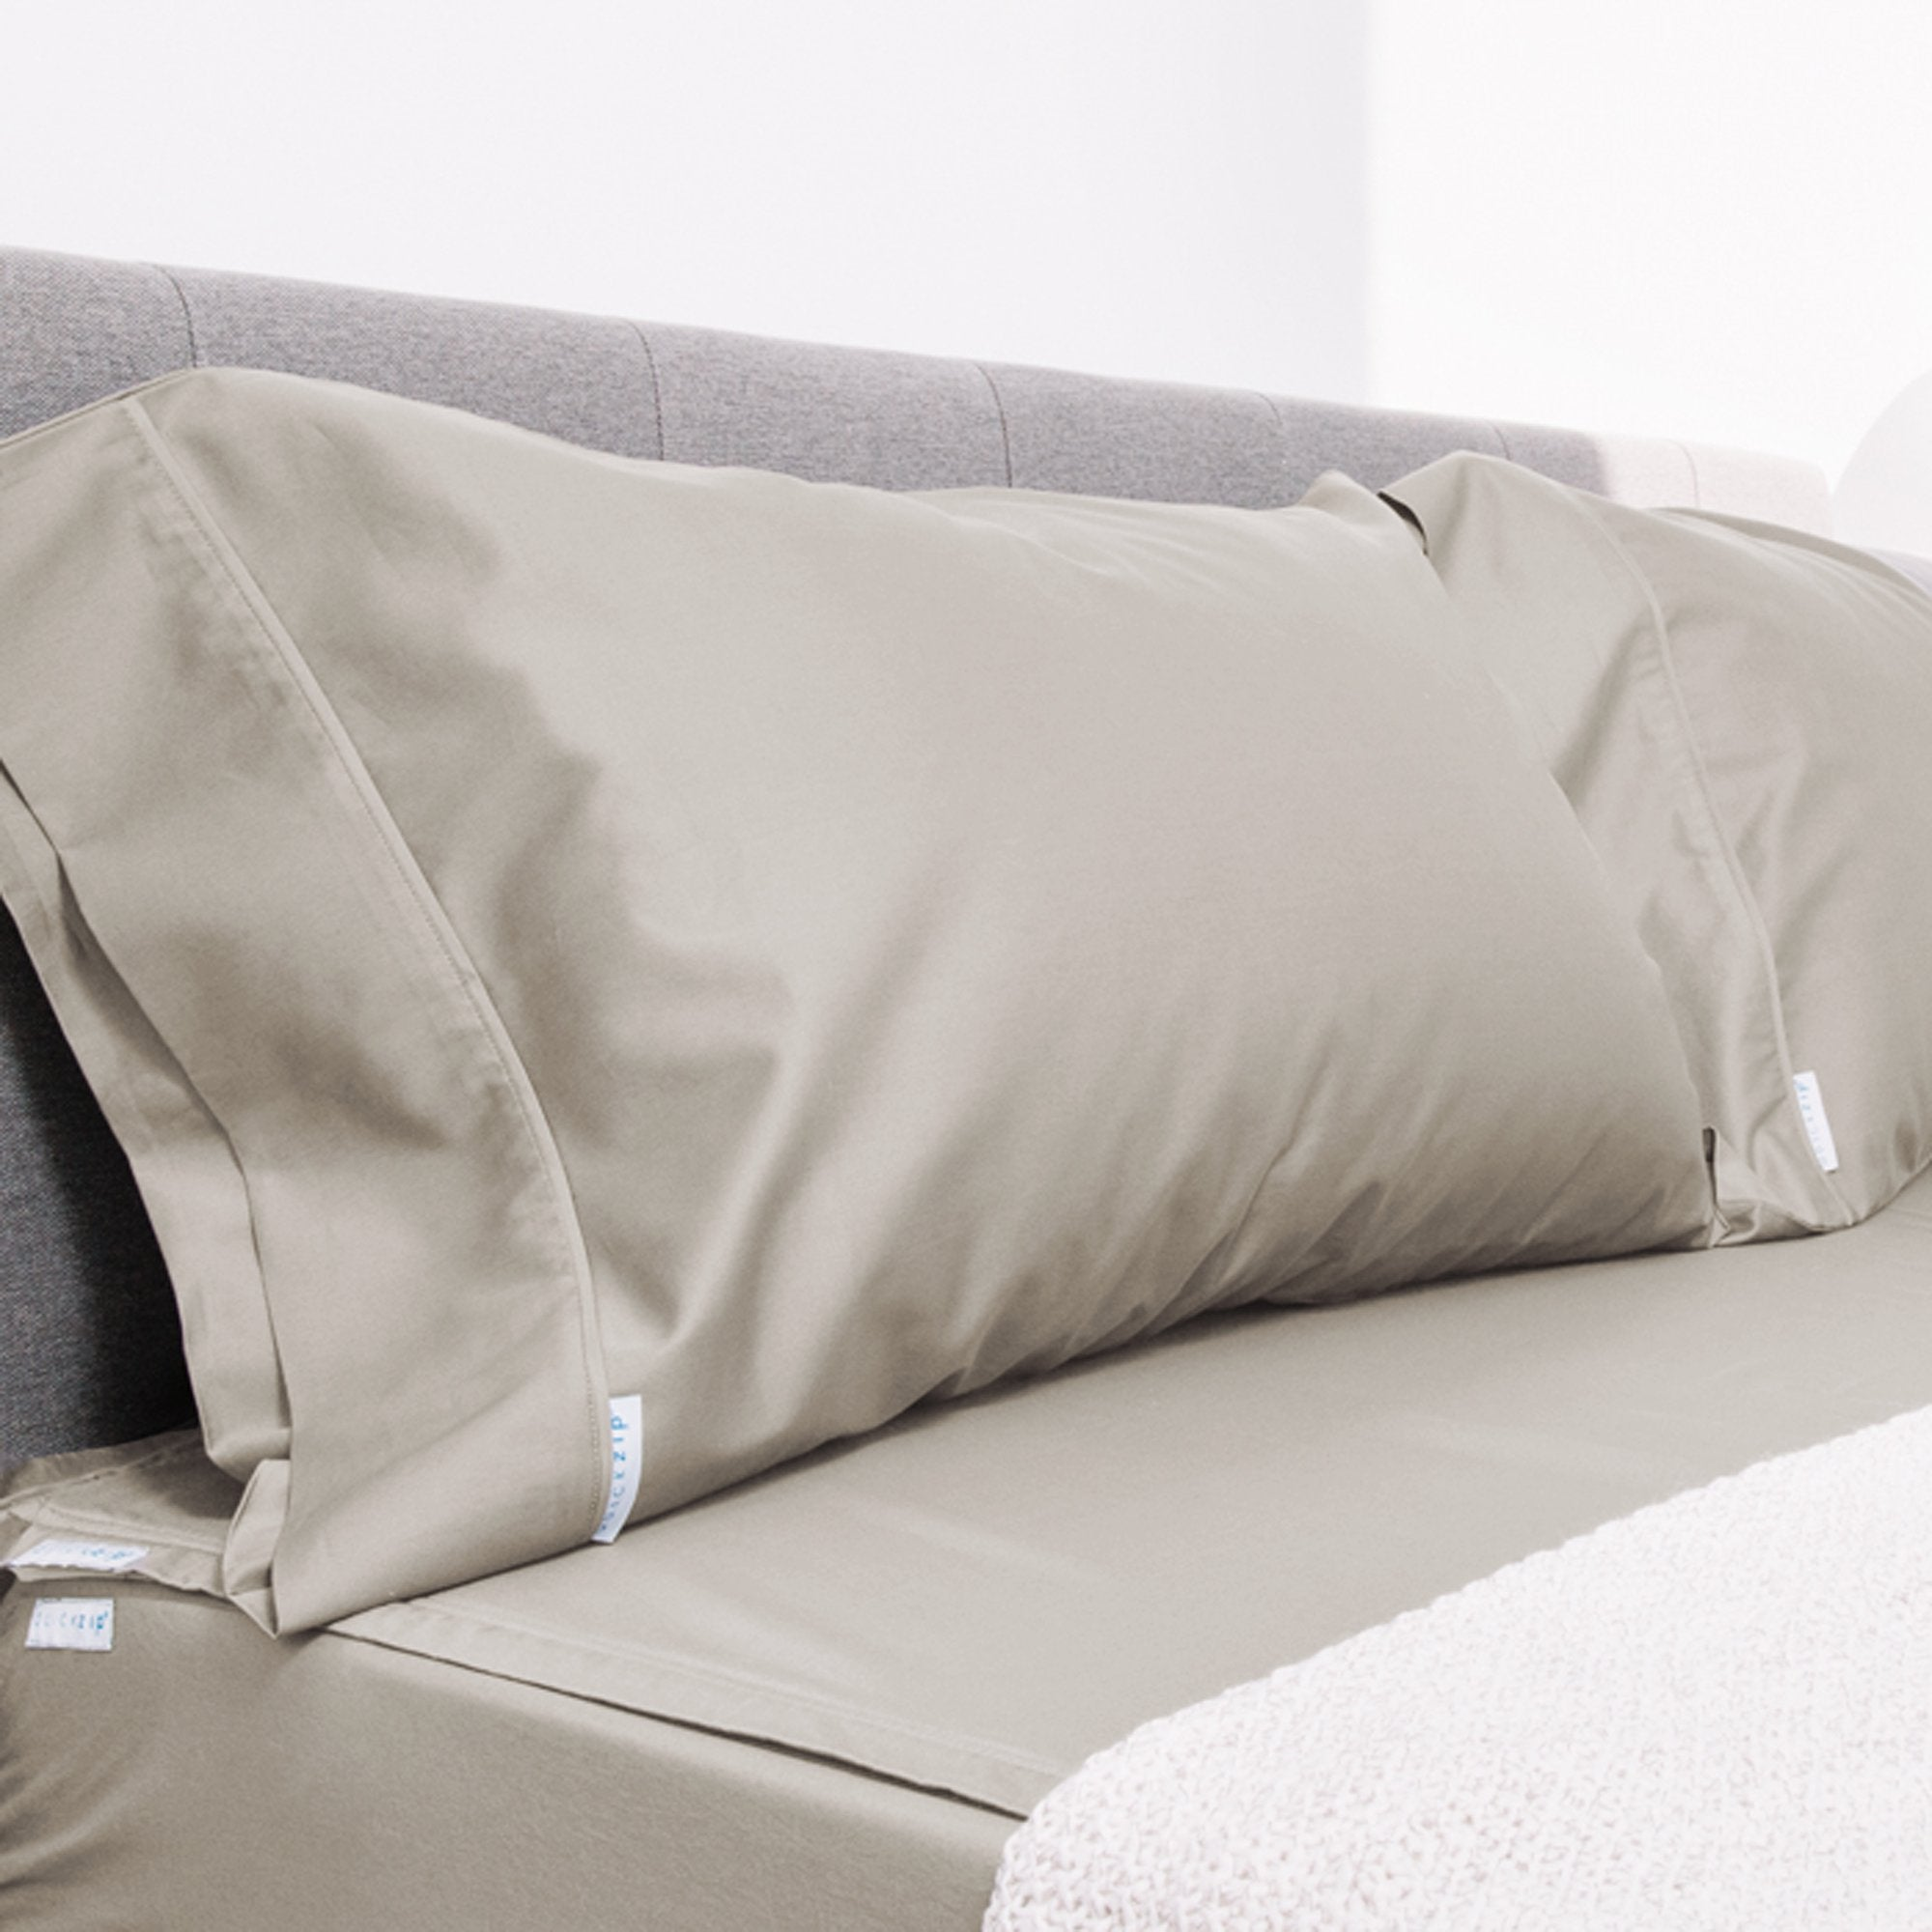 Pillowcase Special Offer